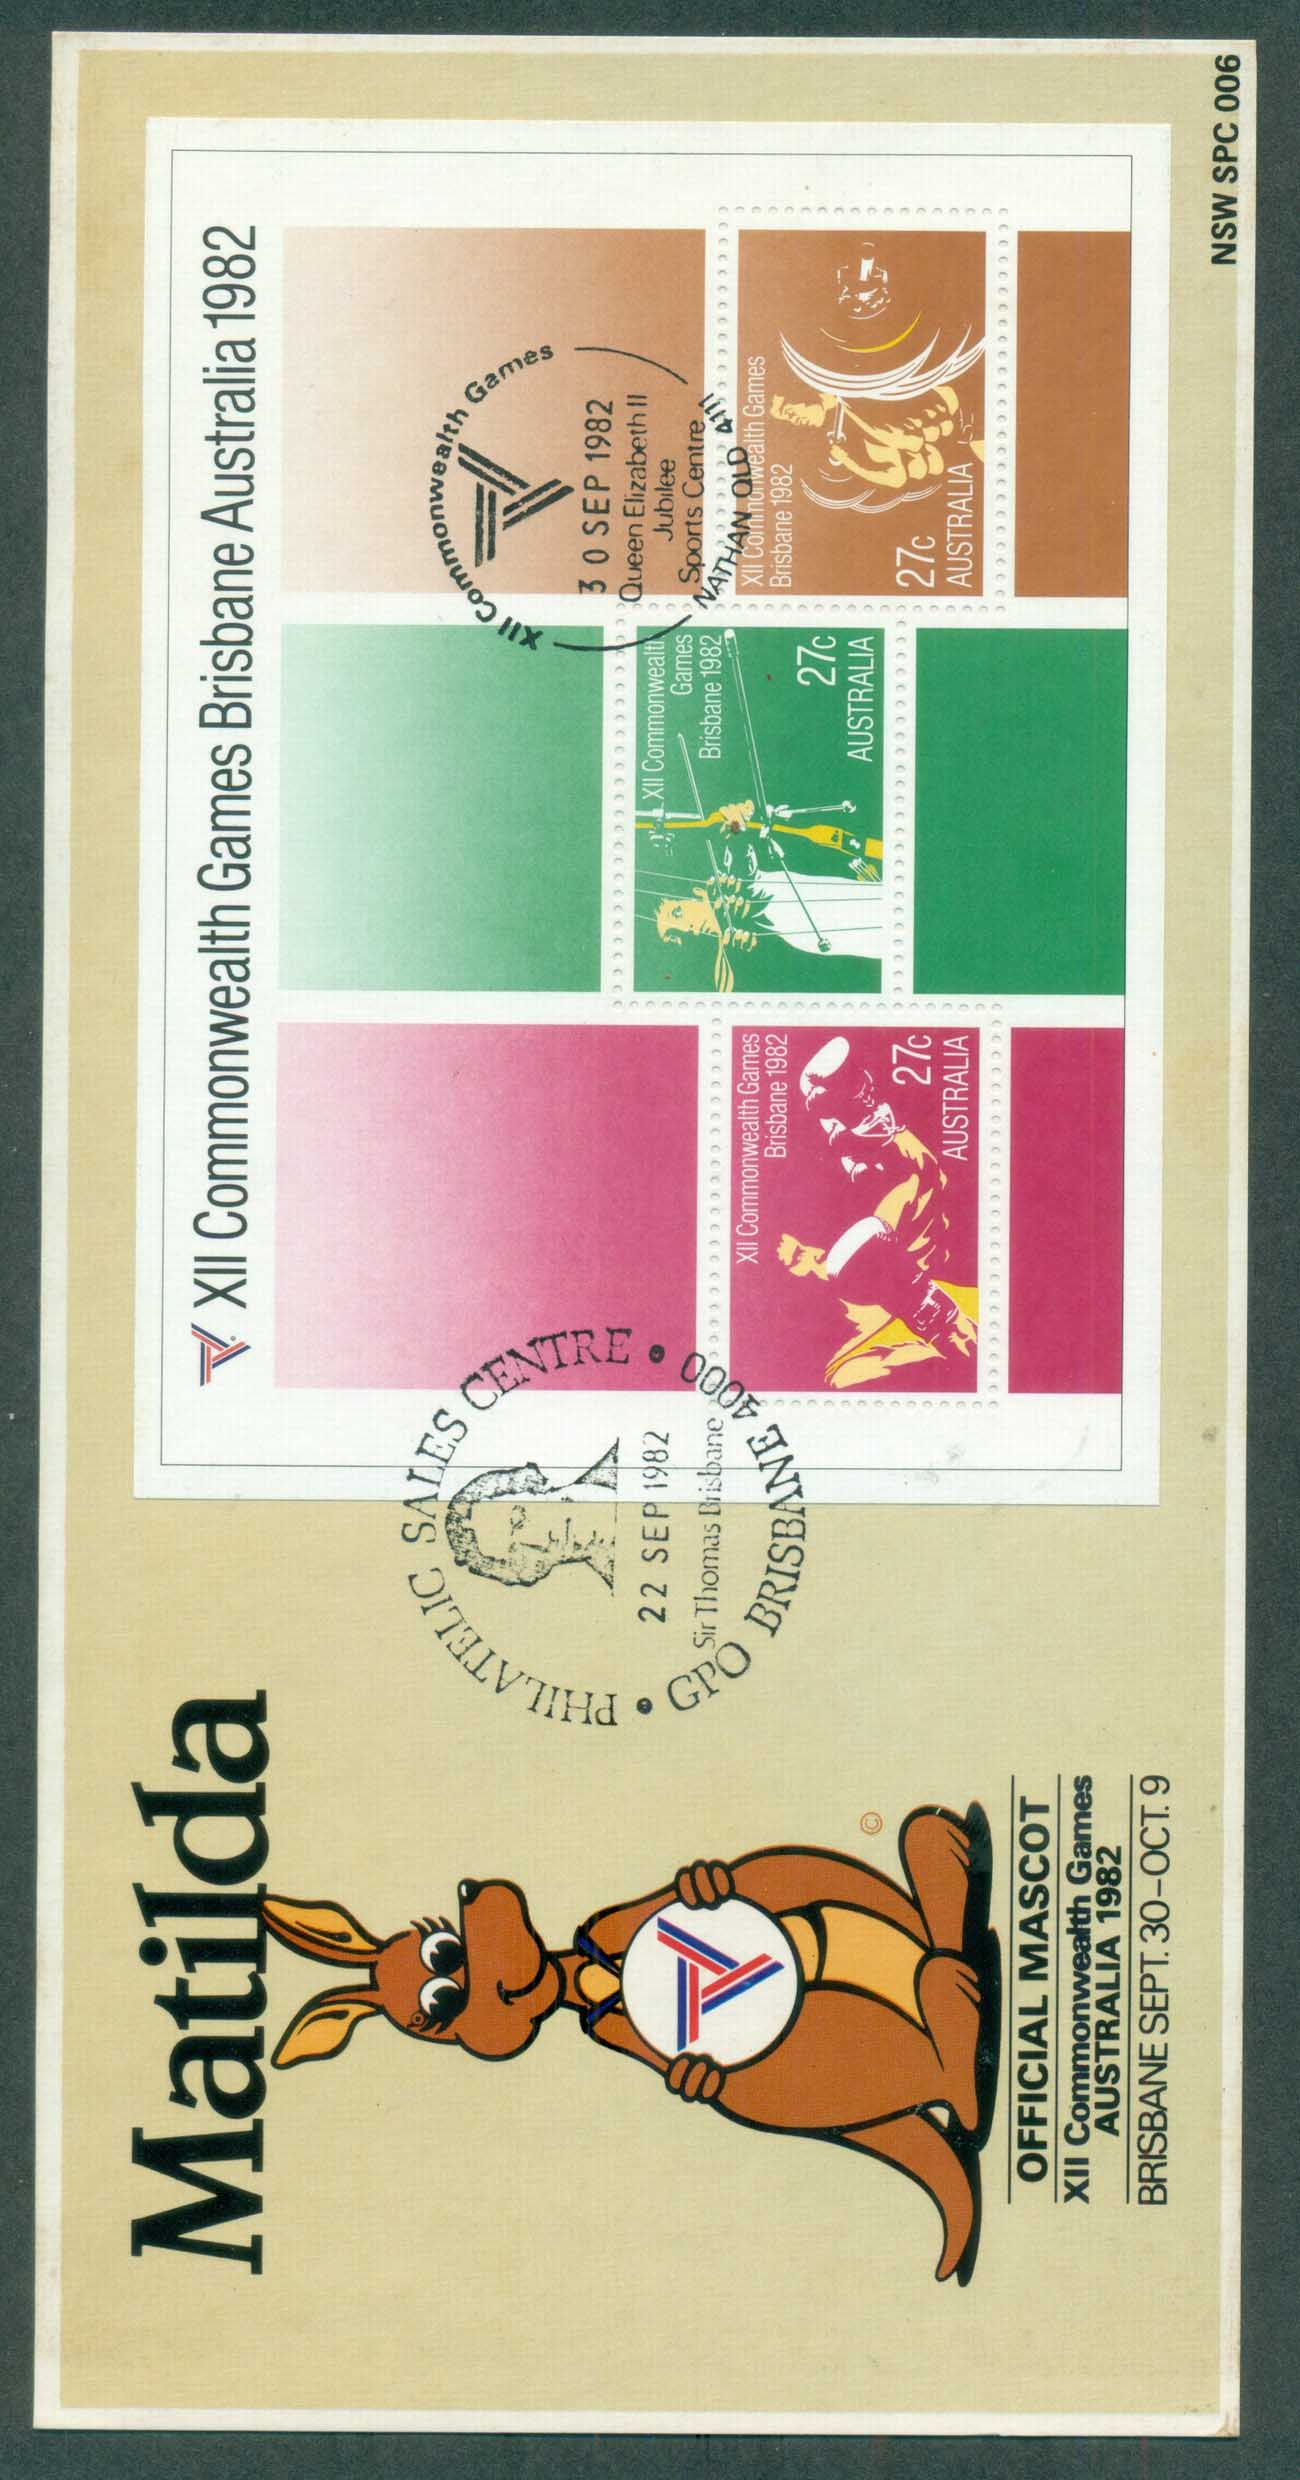 Australia 1982 Commonwealth Games MS Maxicard lot80393